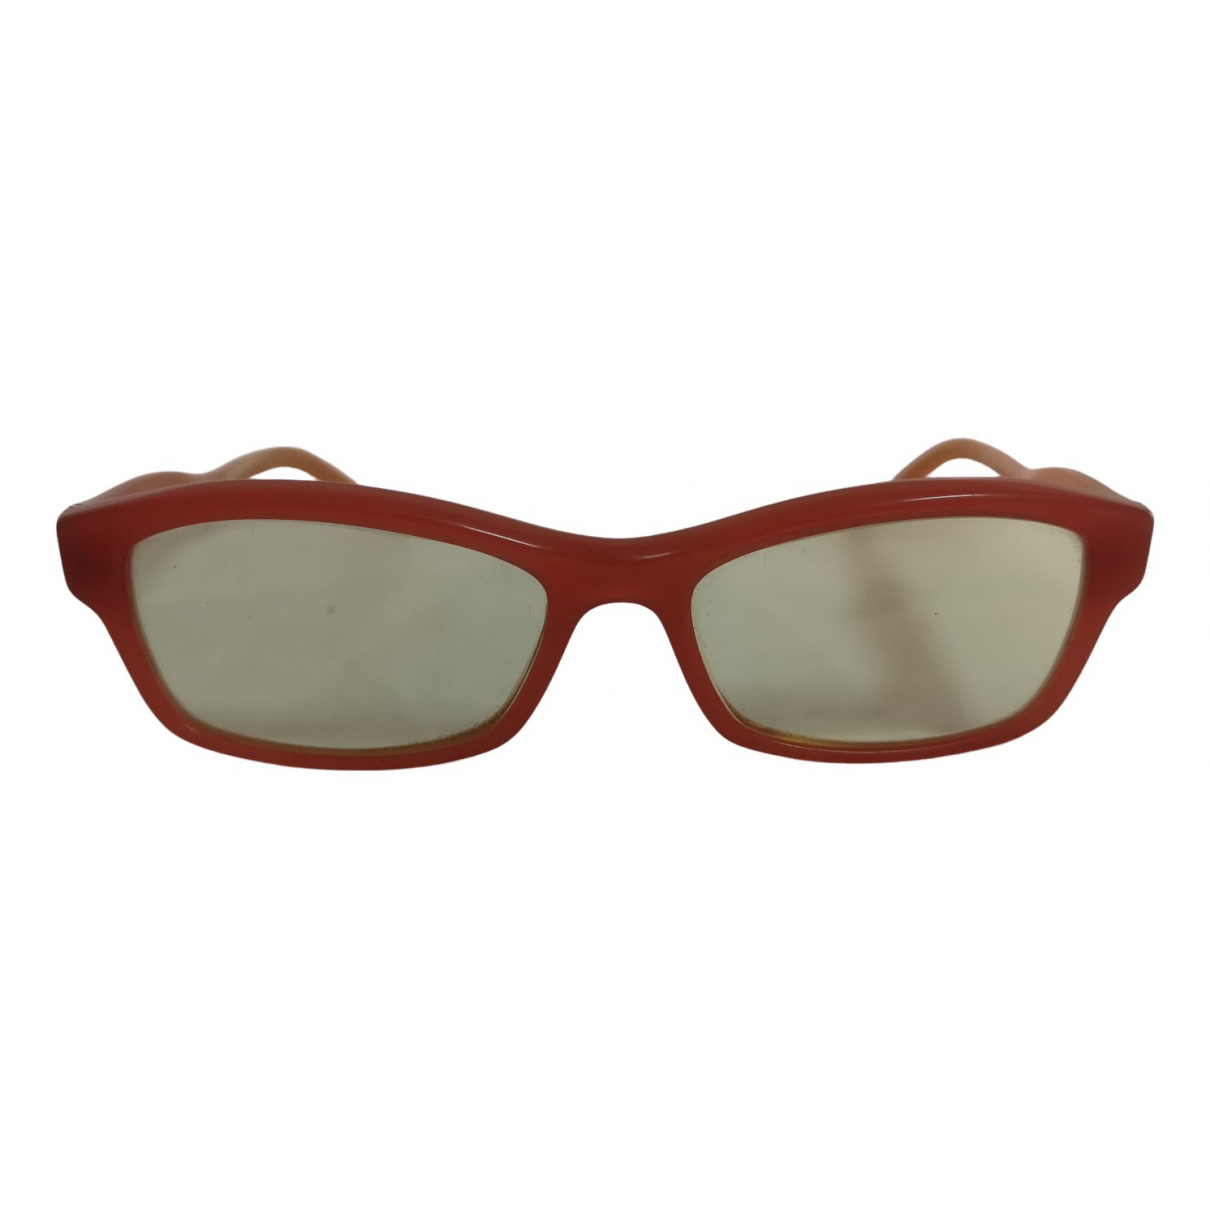 Miu Miu N Pink Sunglasses for Women N